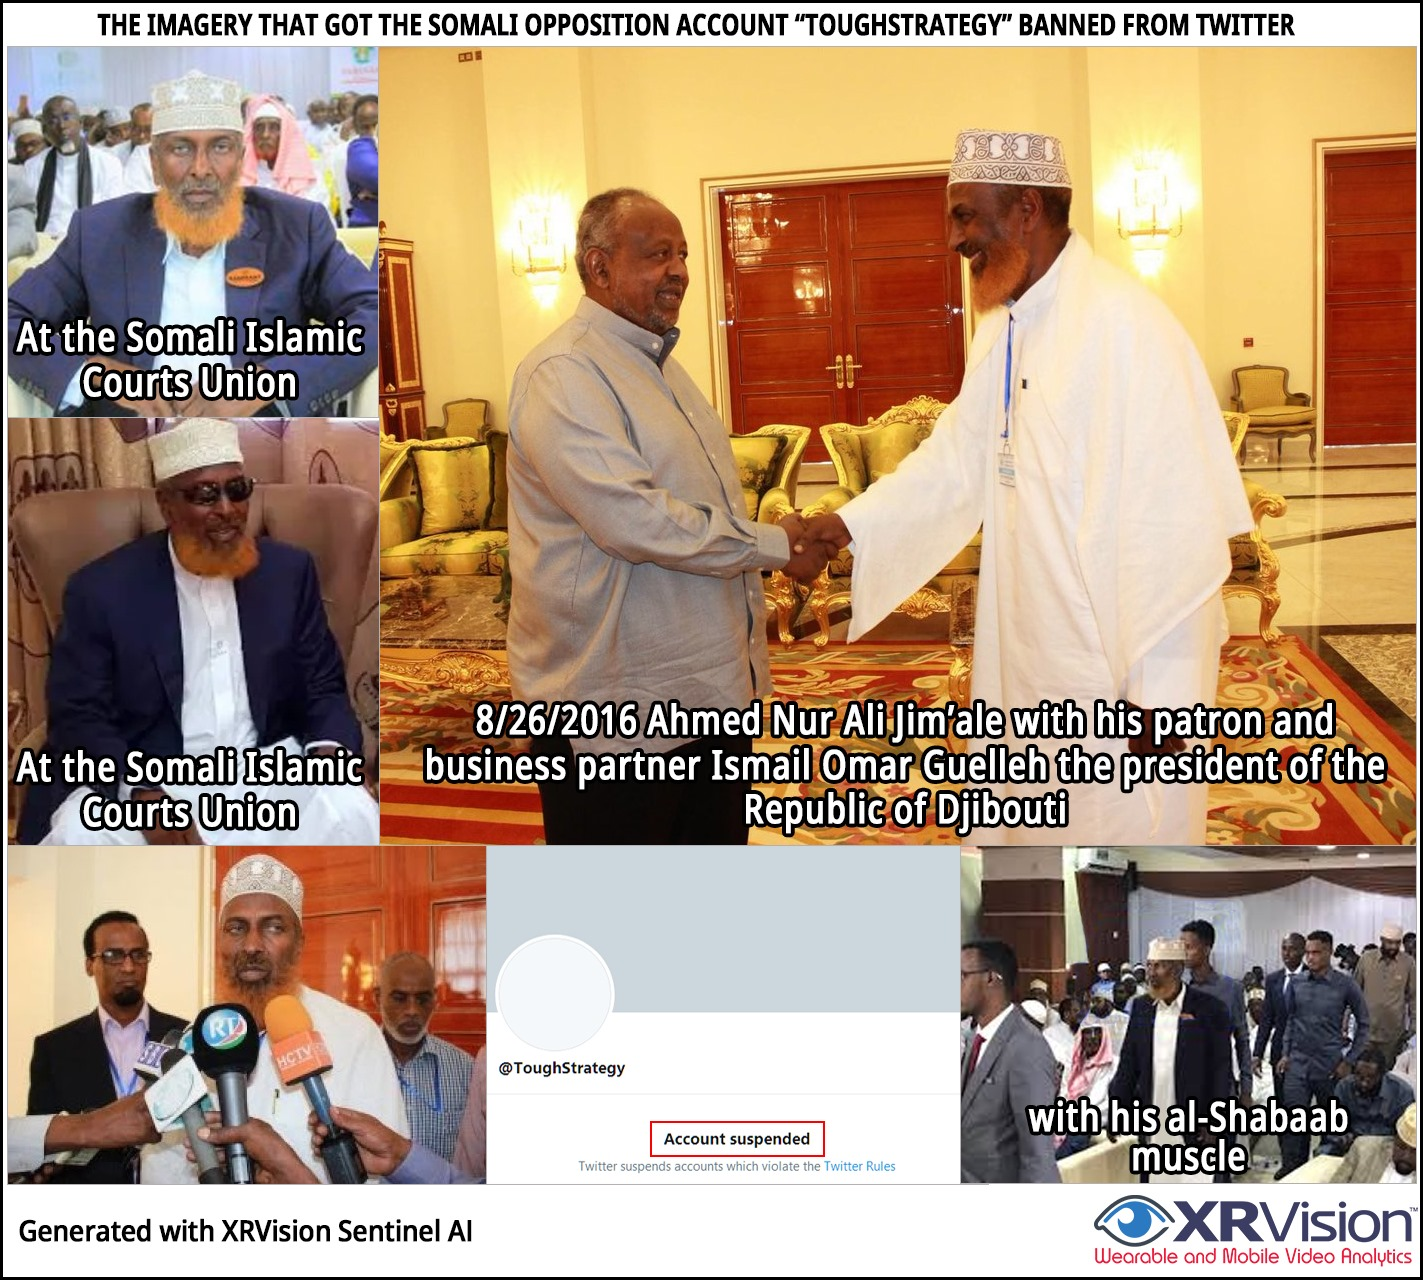 """Sample imagery published by the Somali opposition account """"ToughStrategy"""""""